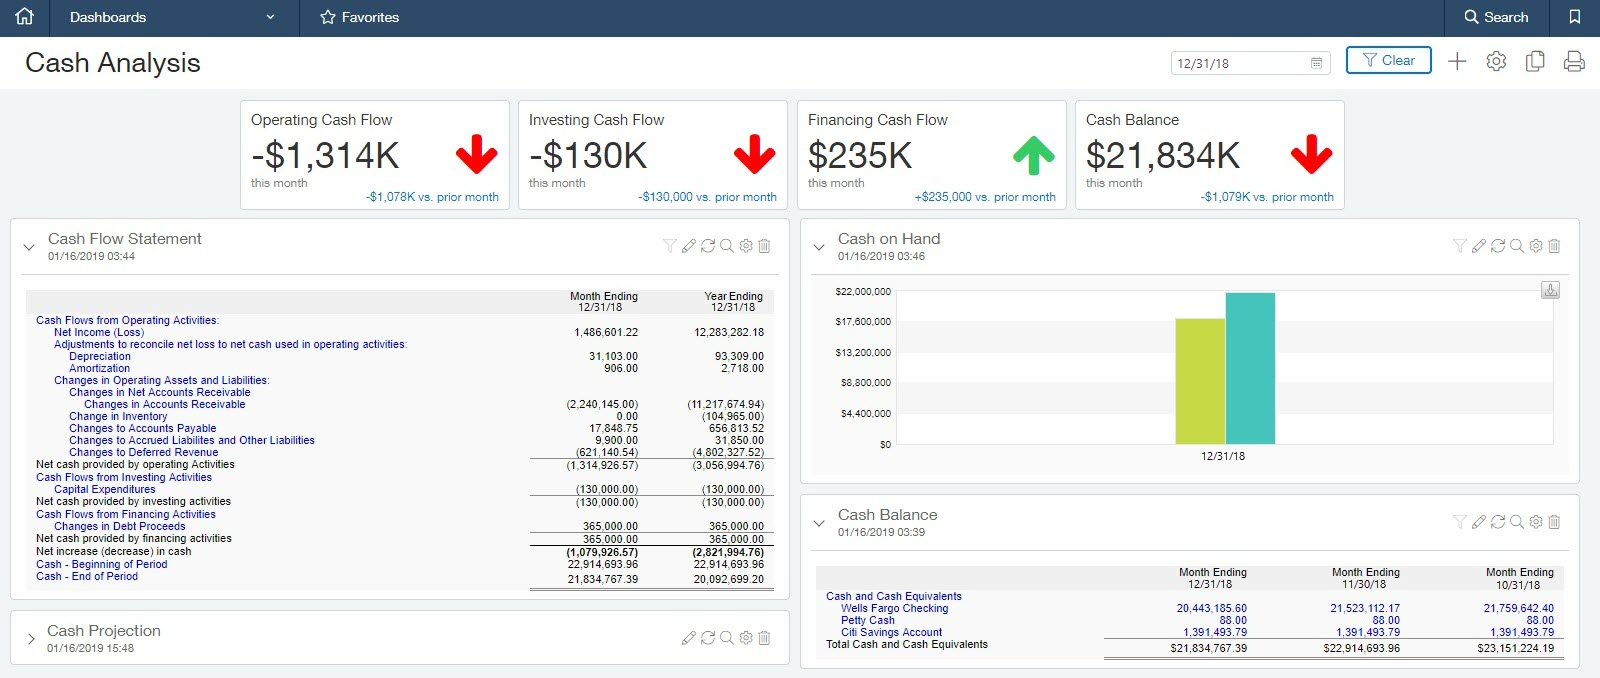 sage intacct cash analysis dashboard